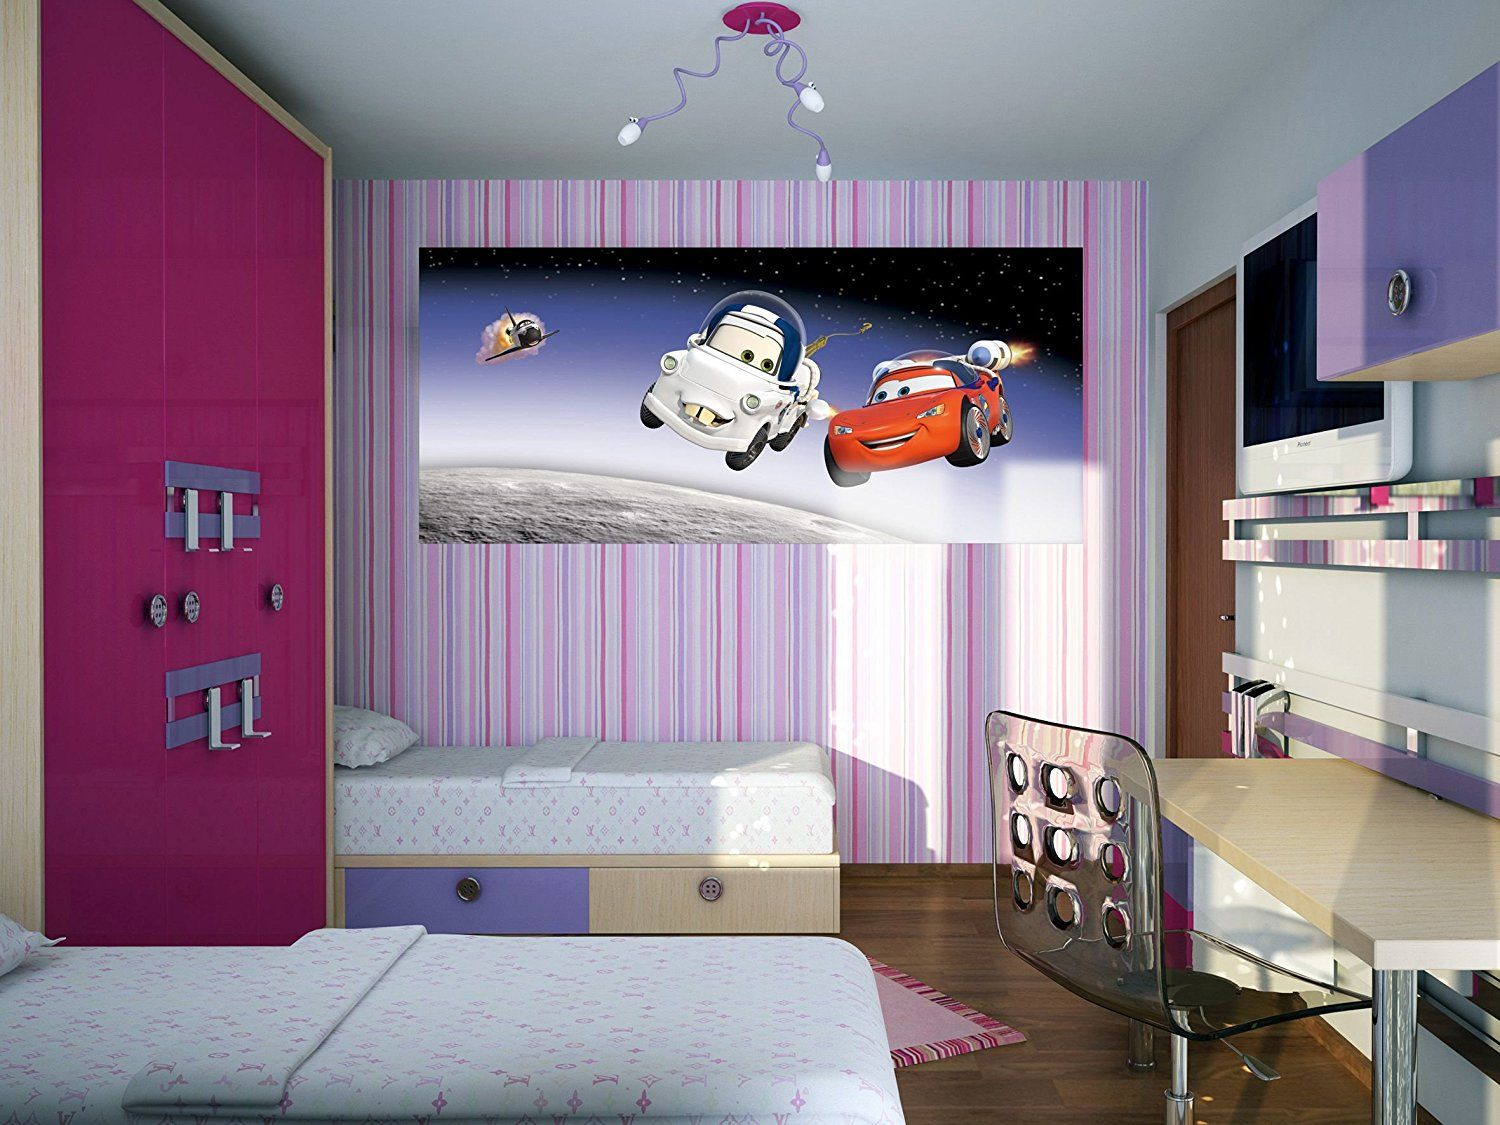 Wall Murals Photo Wallpapers Homewallmurals.co.uk Shop